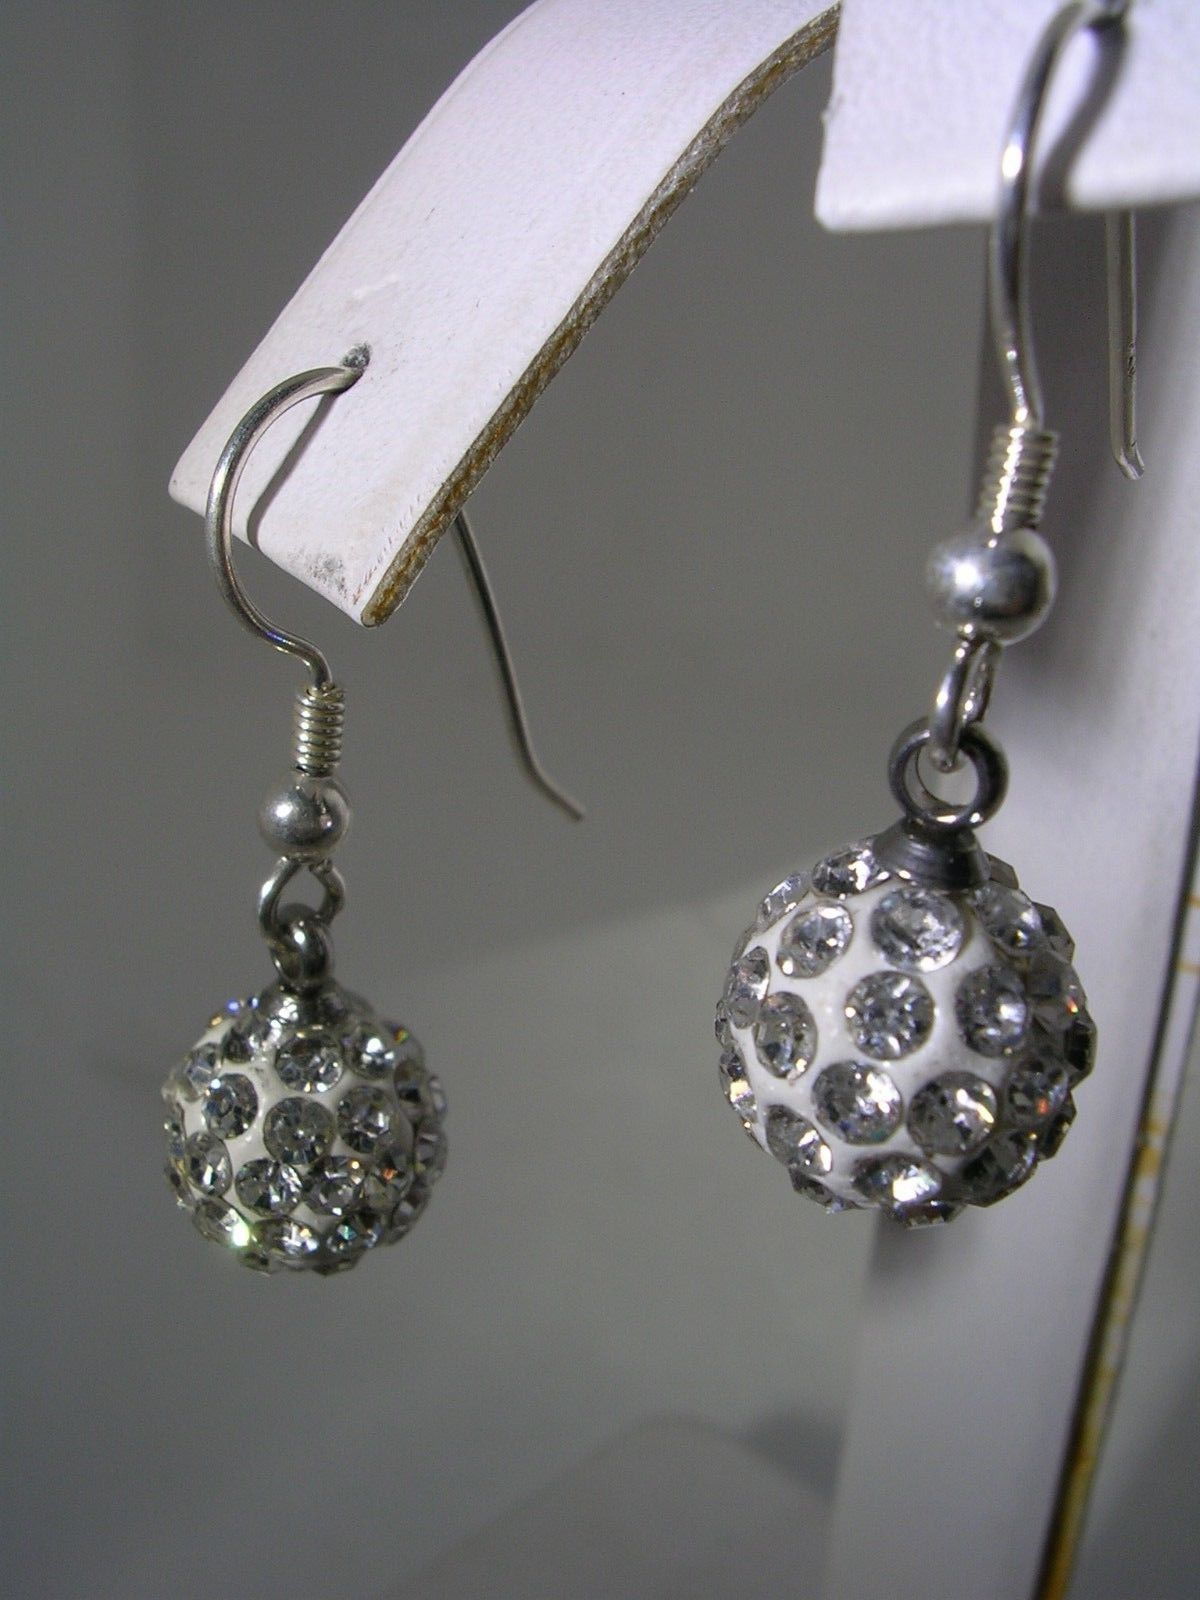 Primary image for WHITE CRYSTAL HANGING BALL EARRINGS IN STERLING SILVER